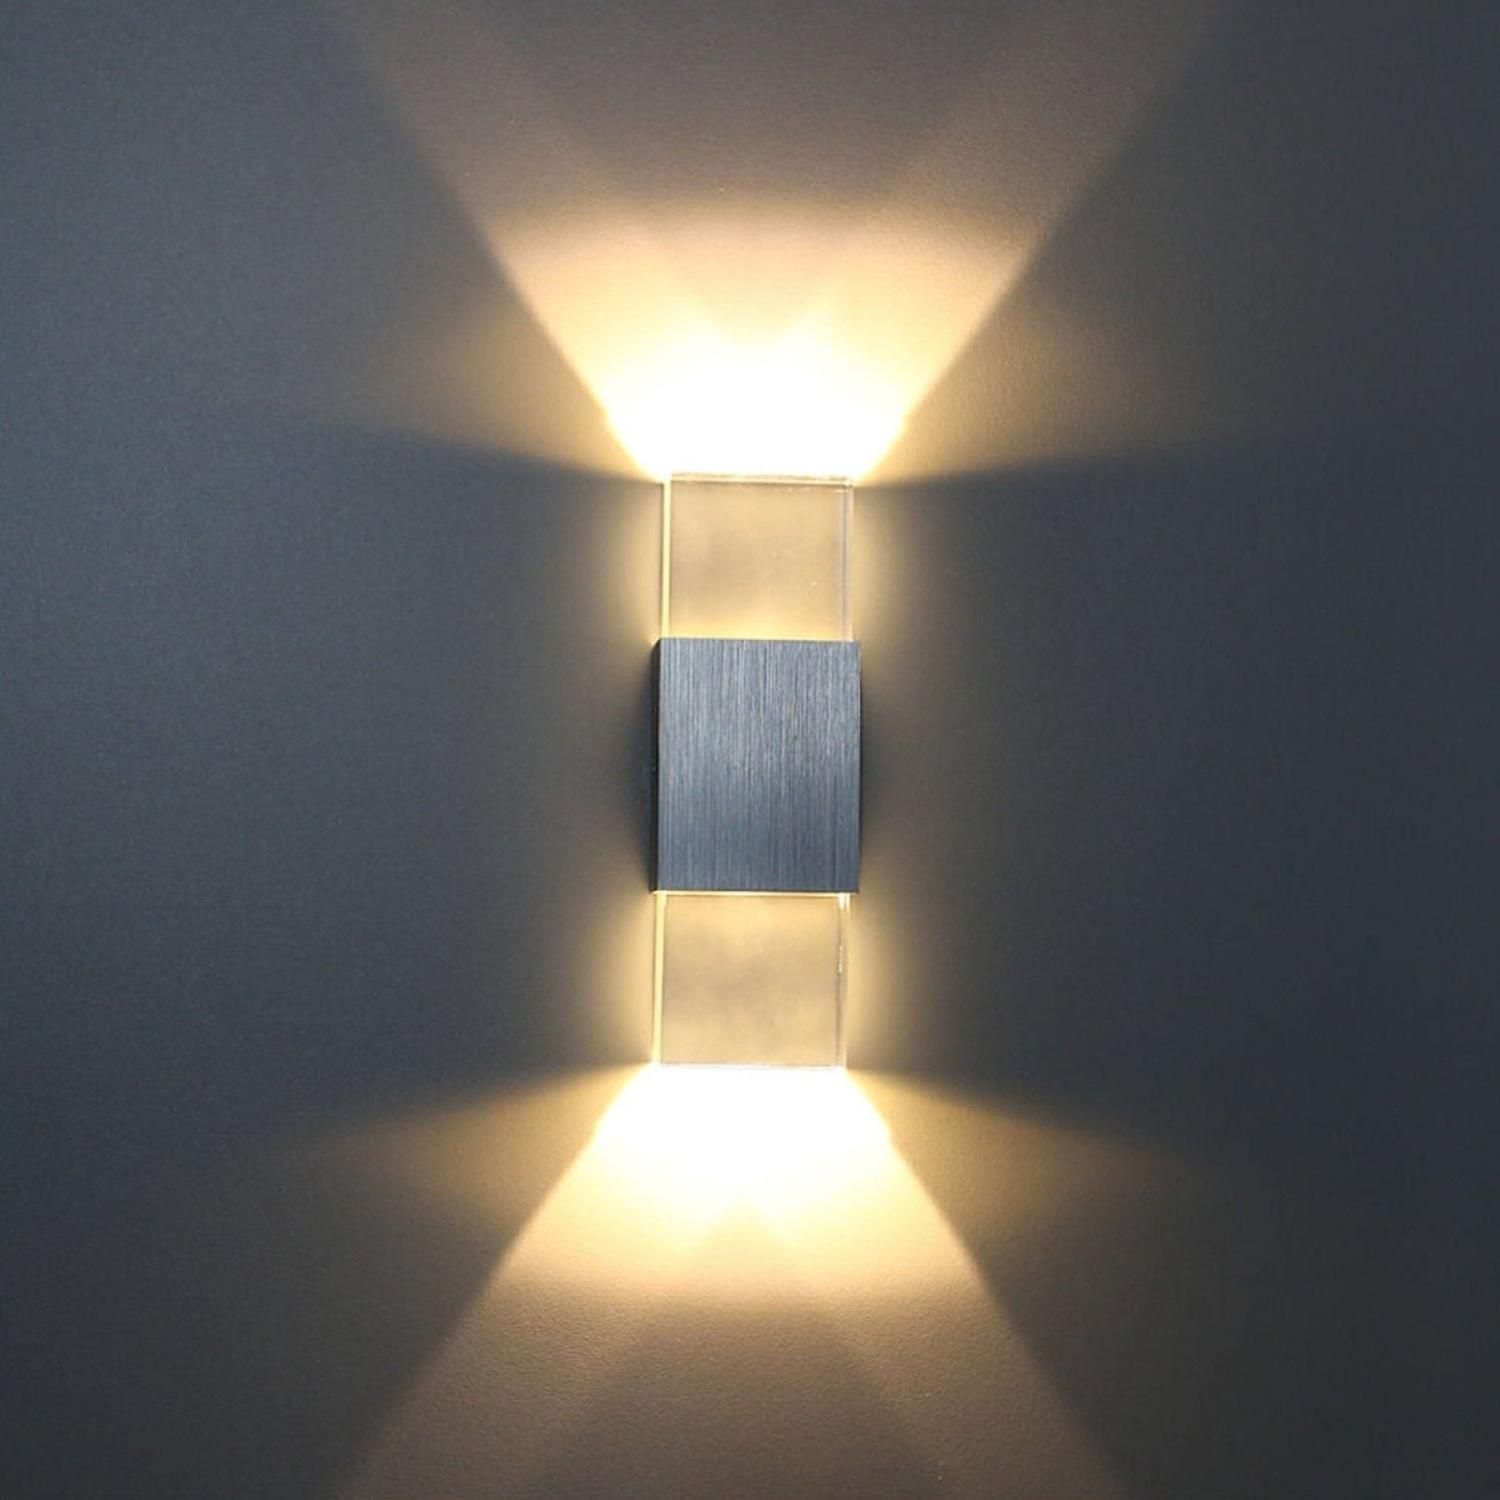 Contemporary Outdoor Lighting Sconces Regarding Widely Used Wall Sconce Light Fixture Contemporary Wall Lighting Long Cylinder (View 5 of 20)